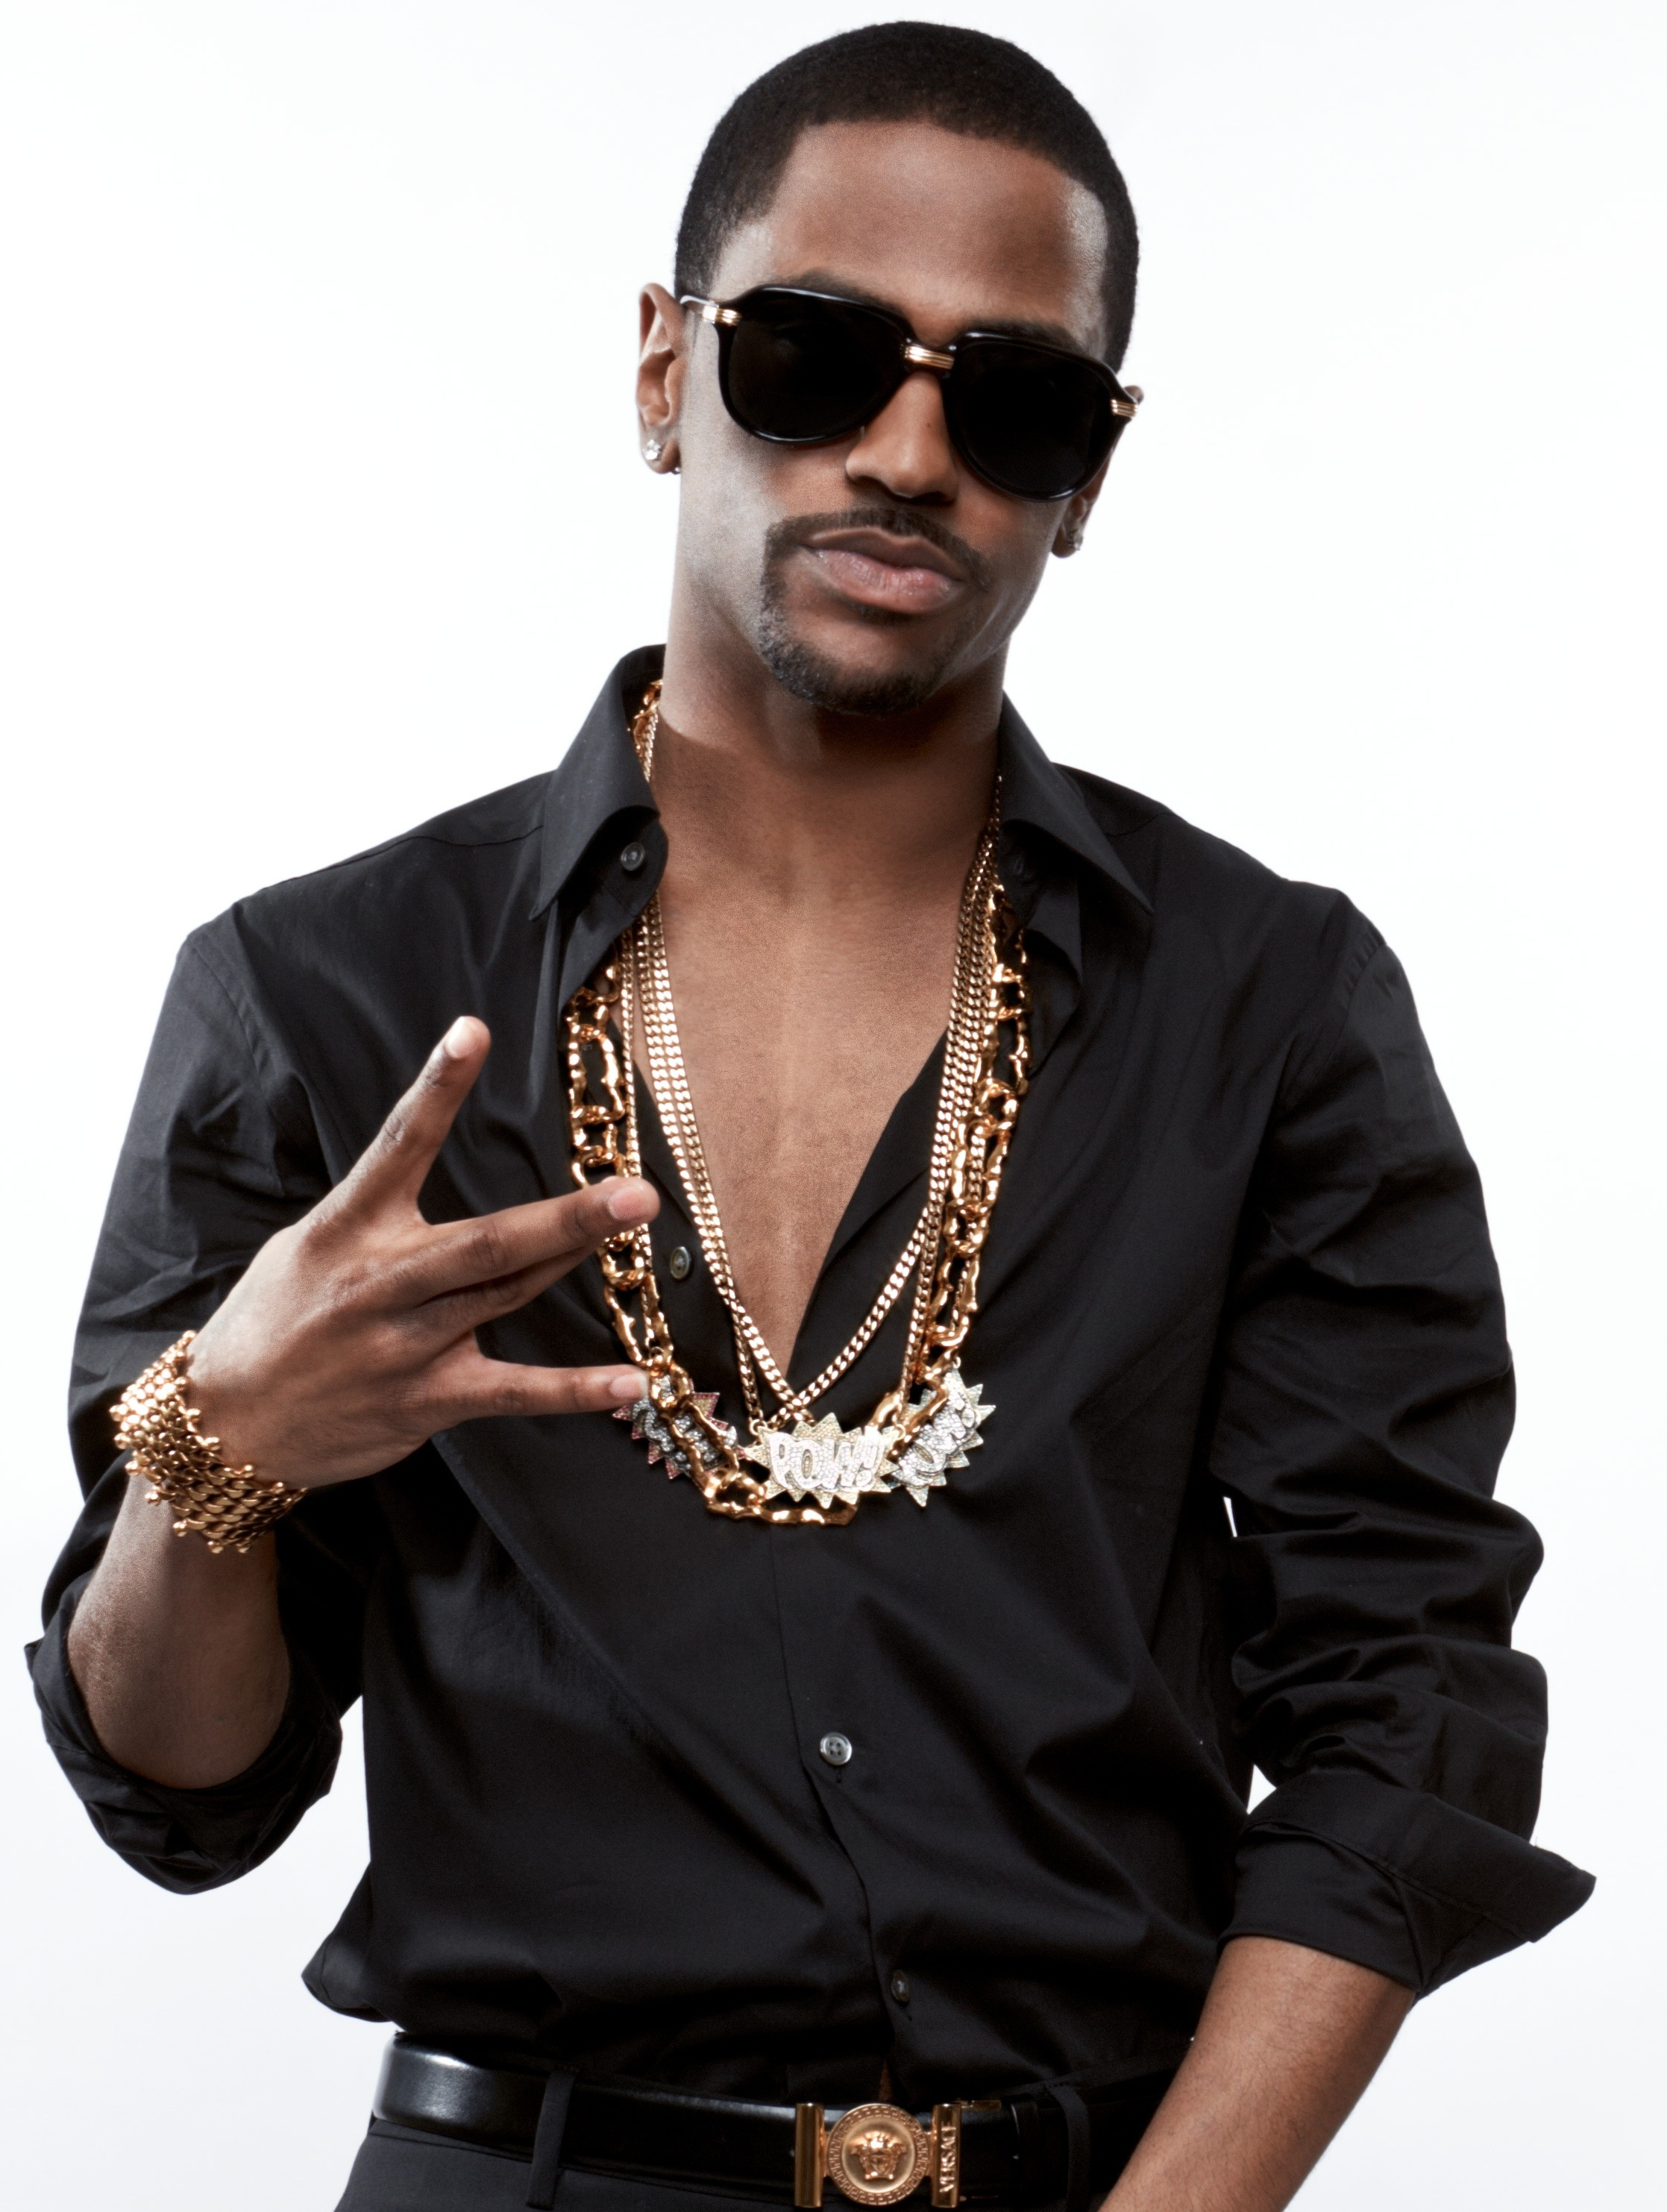 FileBig Sean Glassesjpg  Wikimedia Commons